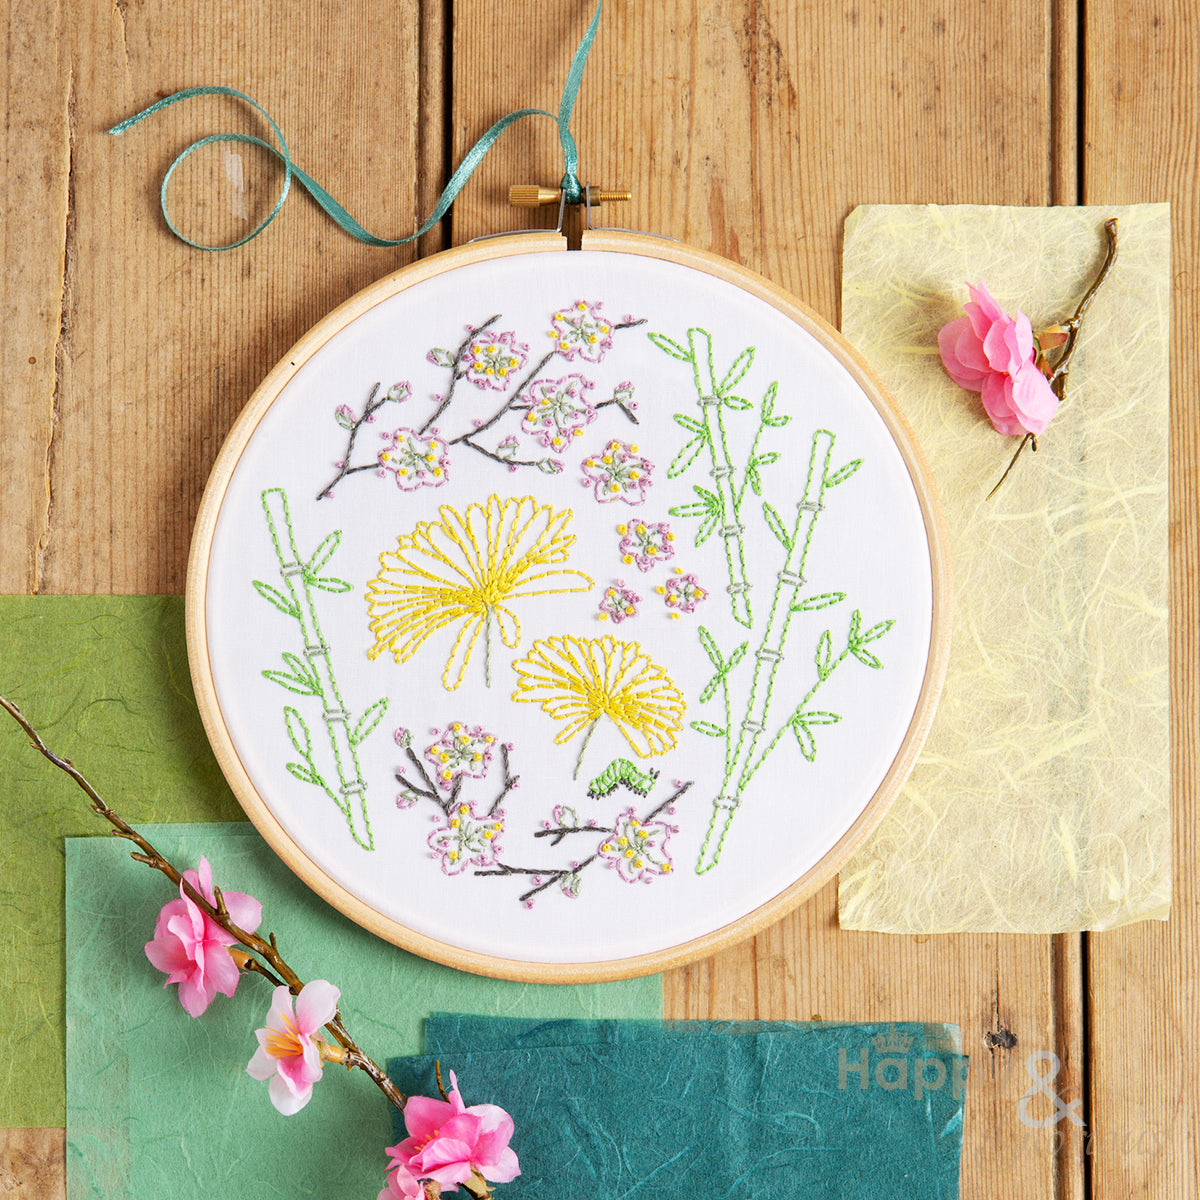 Japanese Garden contemporary embroidery craft kit